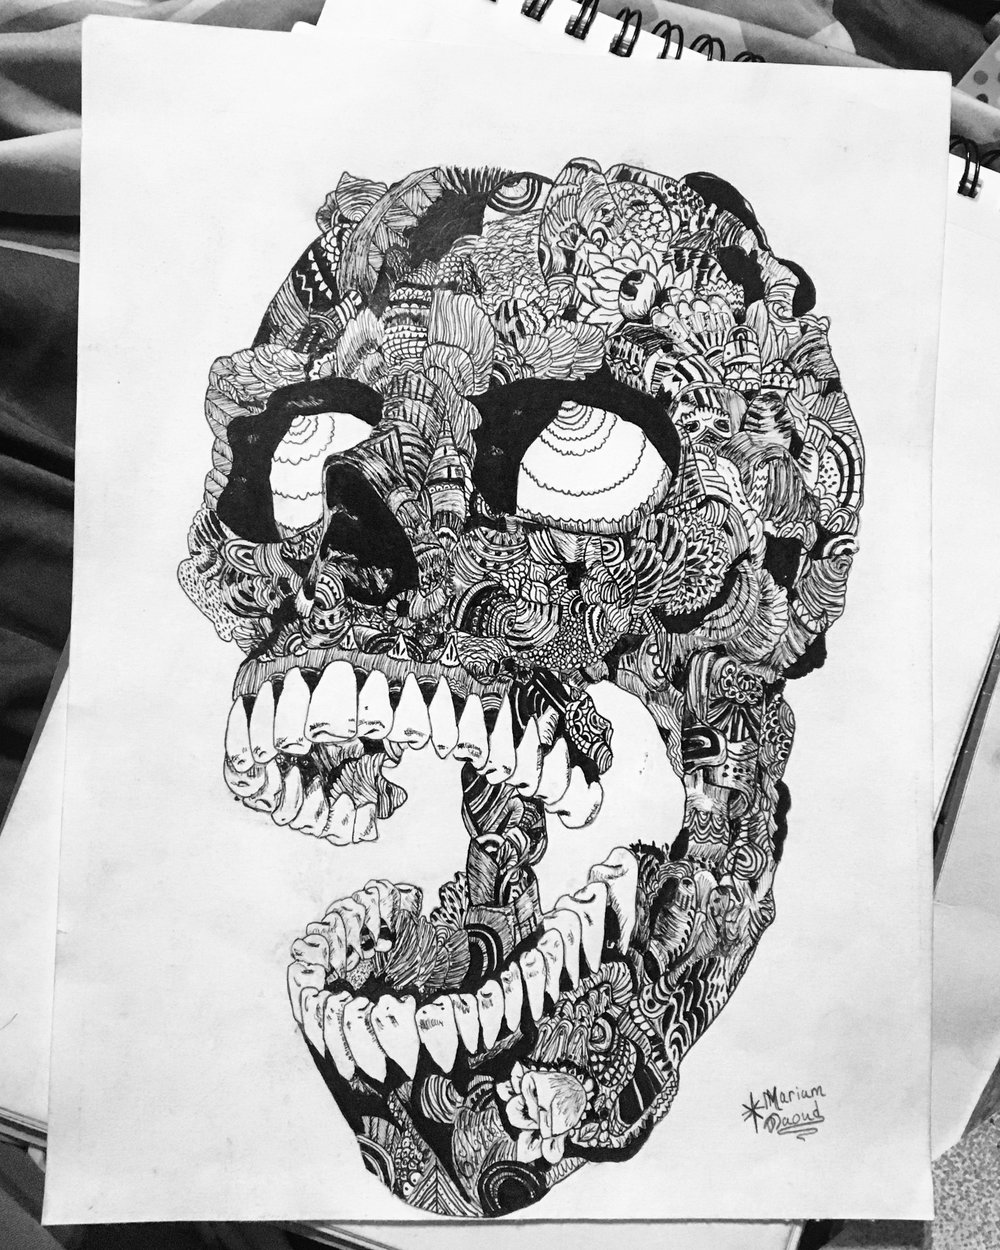 I was inspired by the Latin Day of the Dead holiday and their sugar skulls, but I took a more dark approach to it and I used a zentangle technique. The day of the dead art intrigued me and I gave it a try because it's very complex yet it comes together to create one image; for example, the skull.